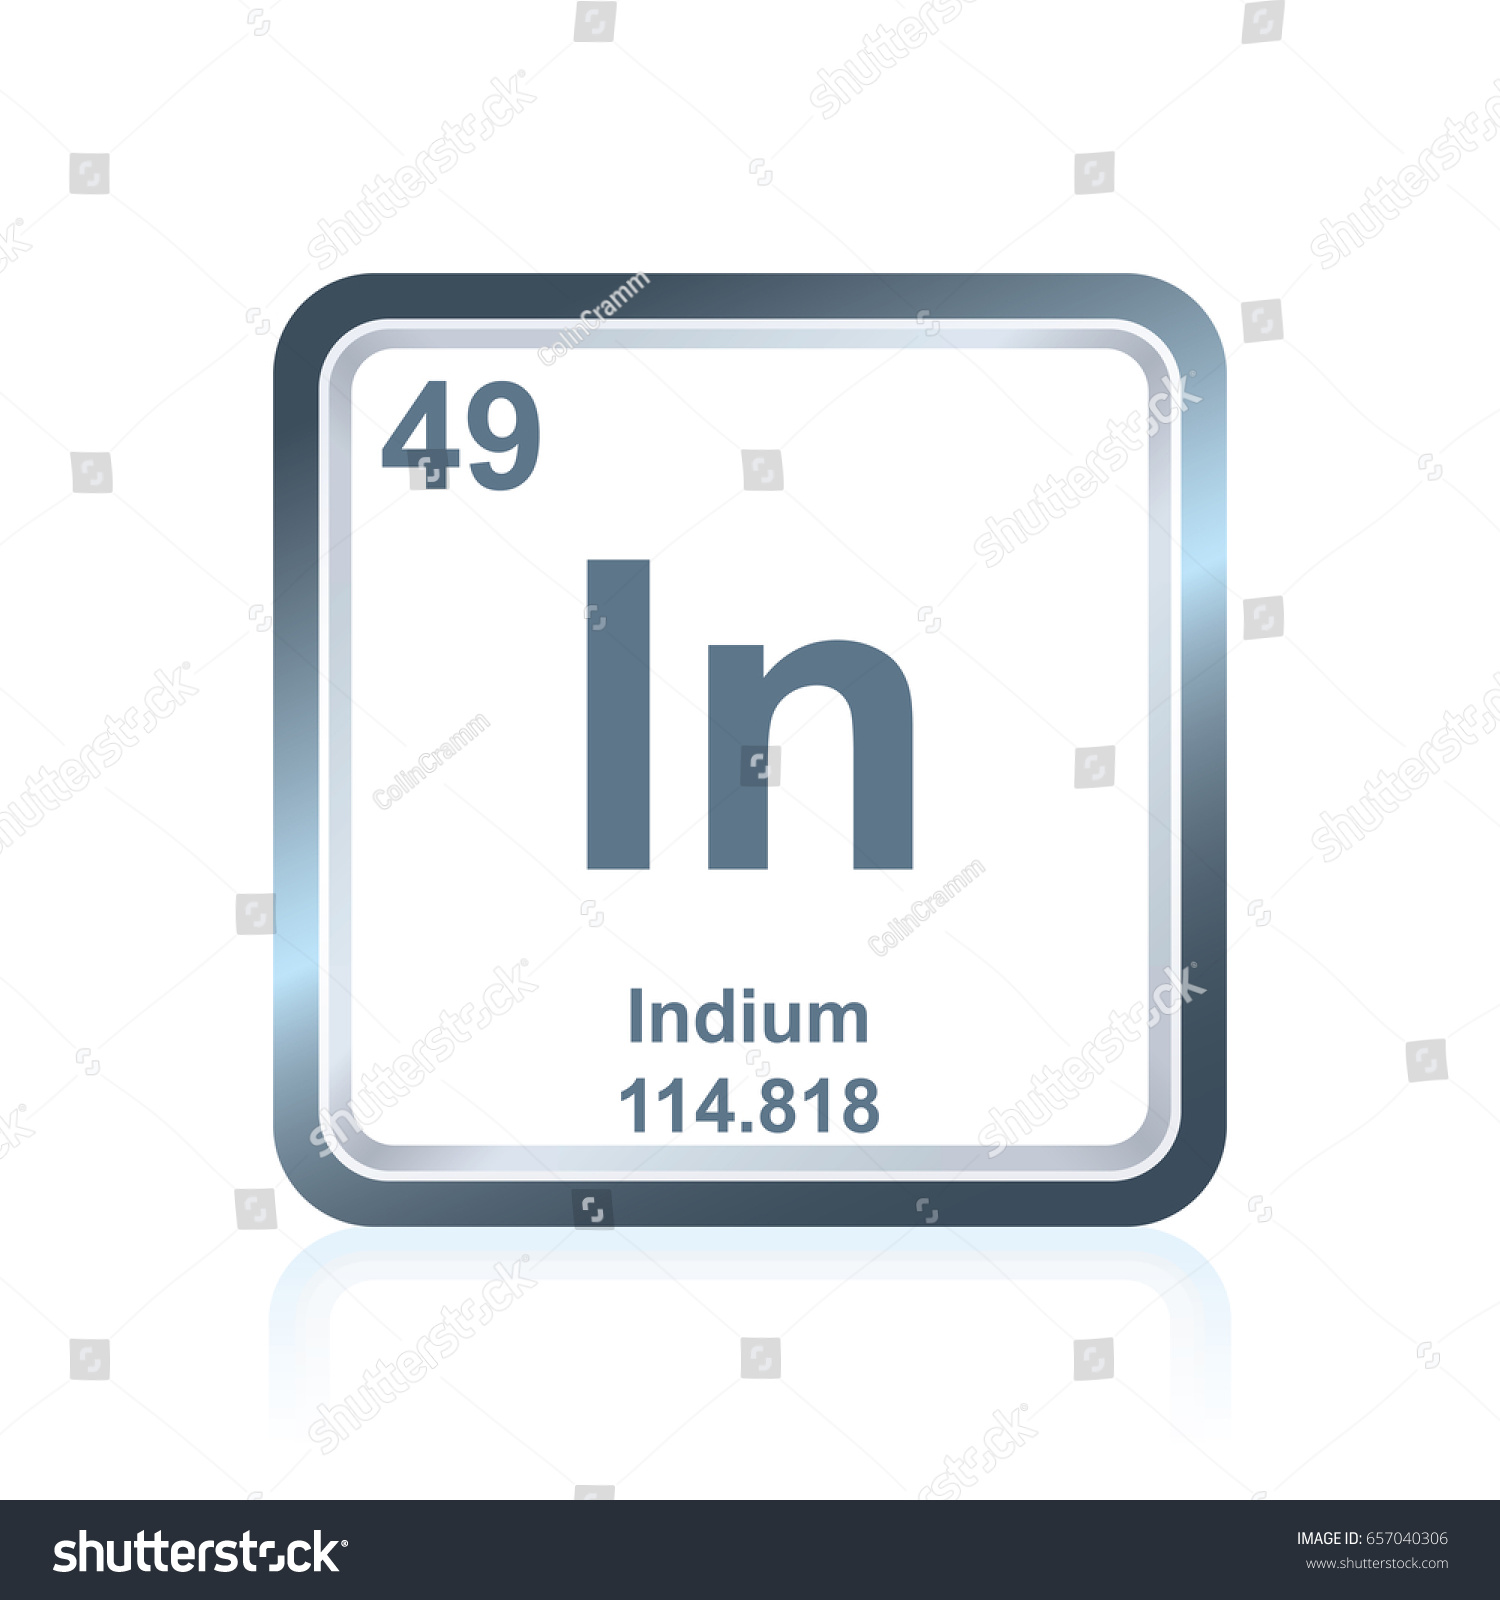 Sn symbol periodic table choice image periodic table images periodic table symbol for salt images periodic table images indium symbol periodic table images periodic table gamestrikefo Gallery